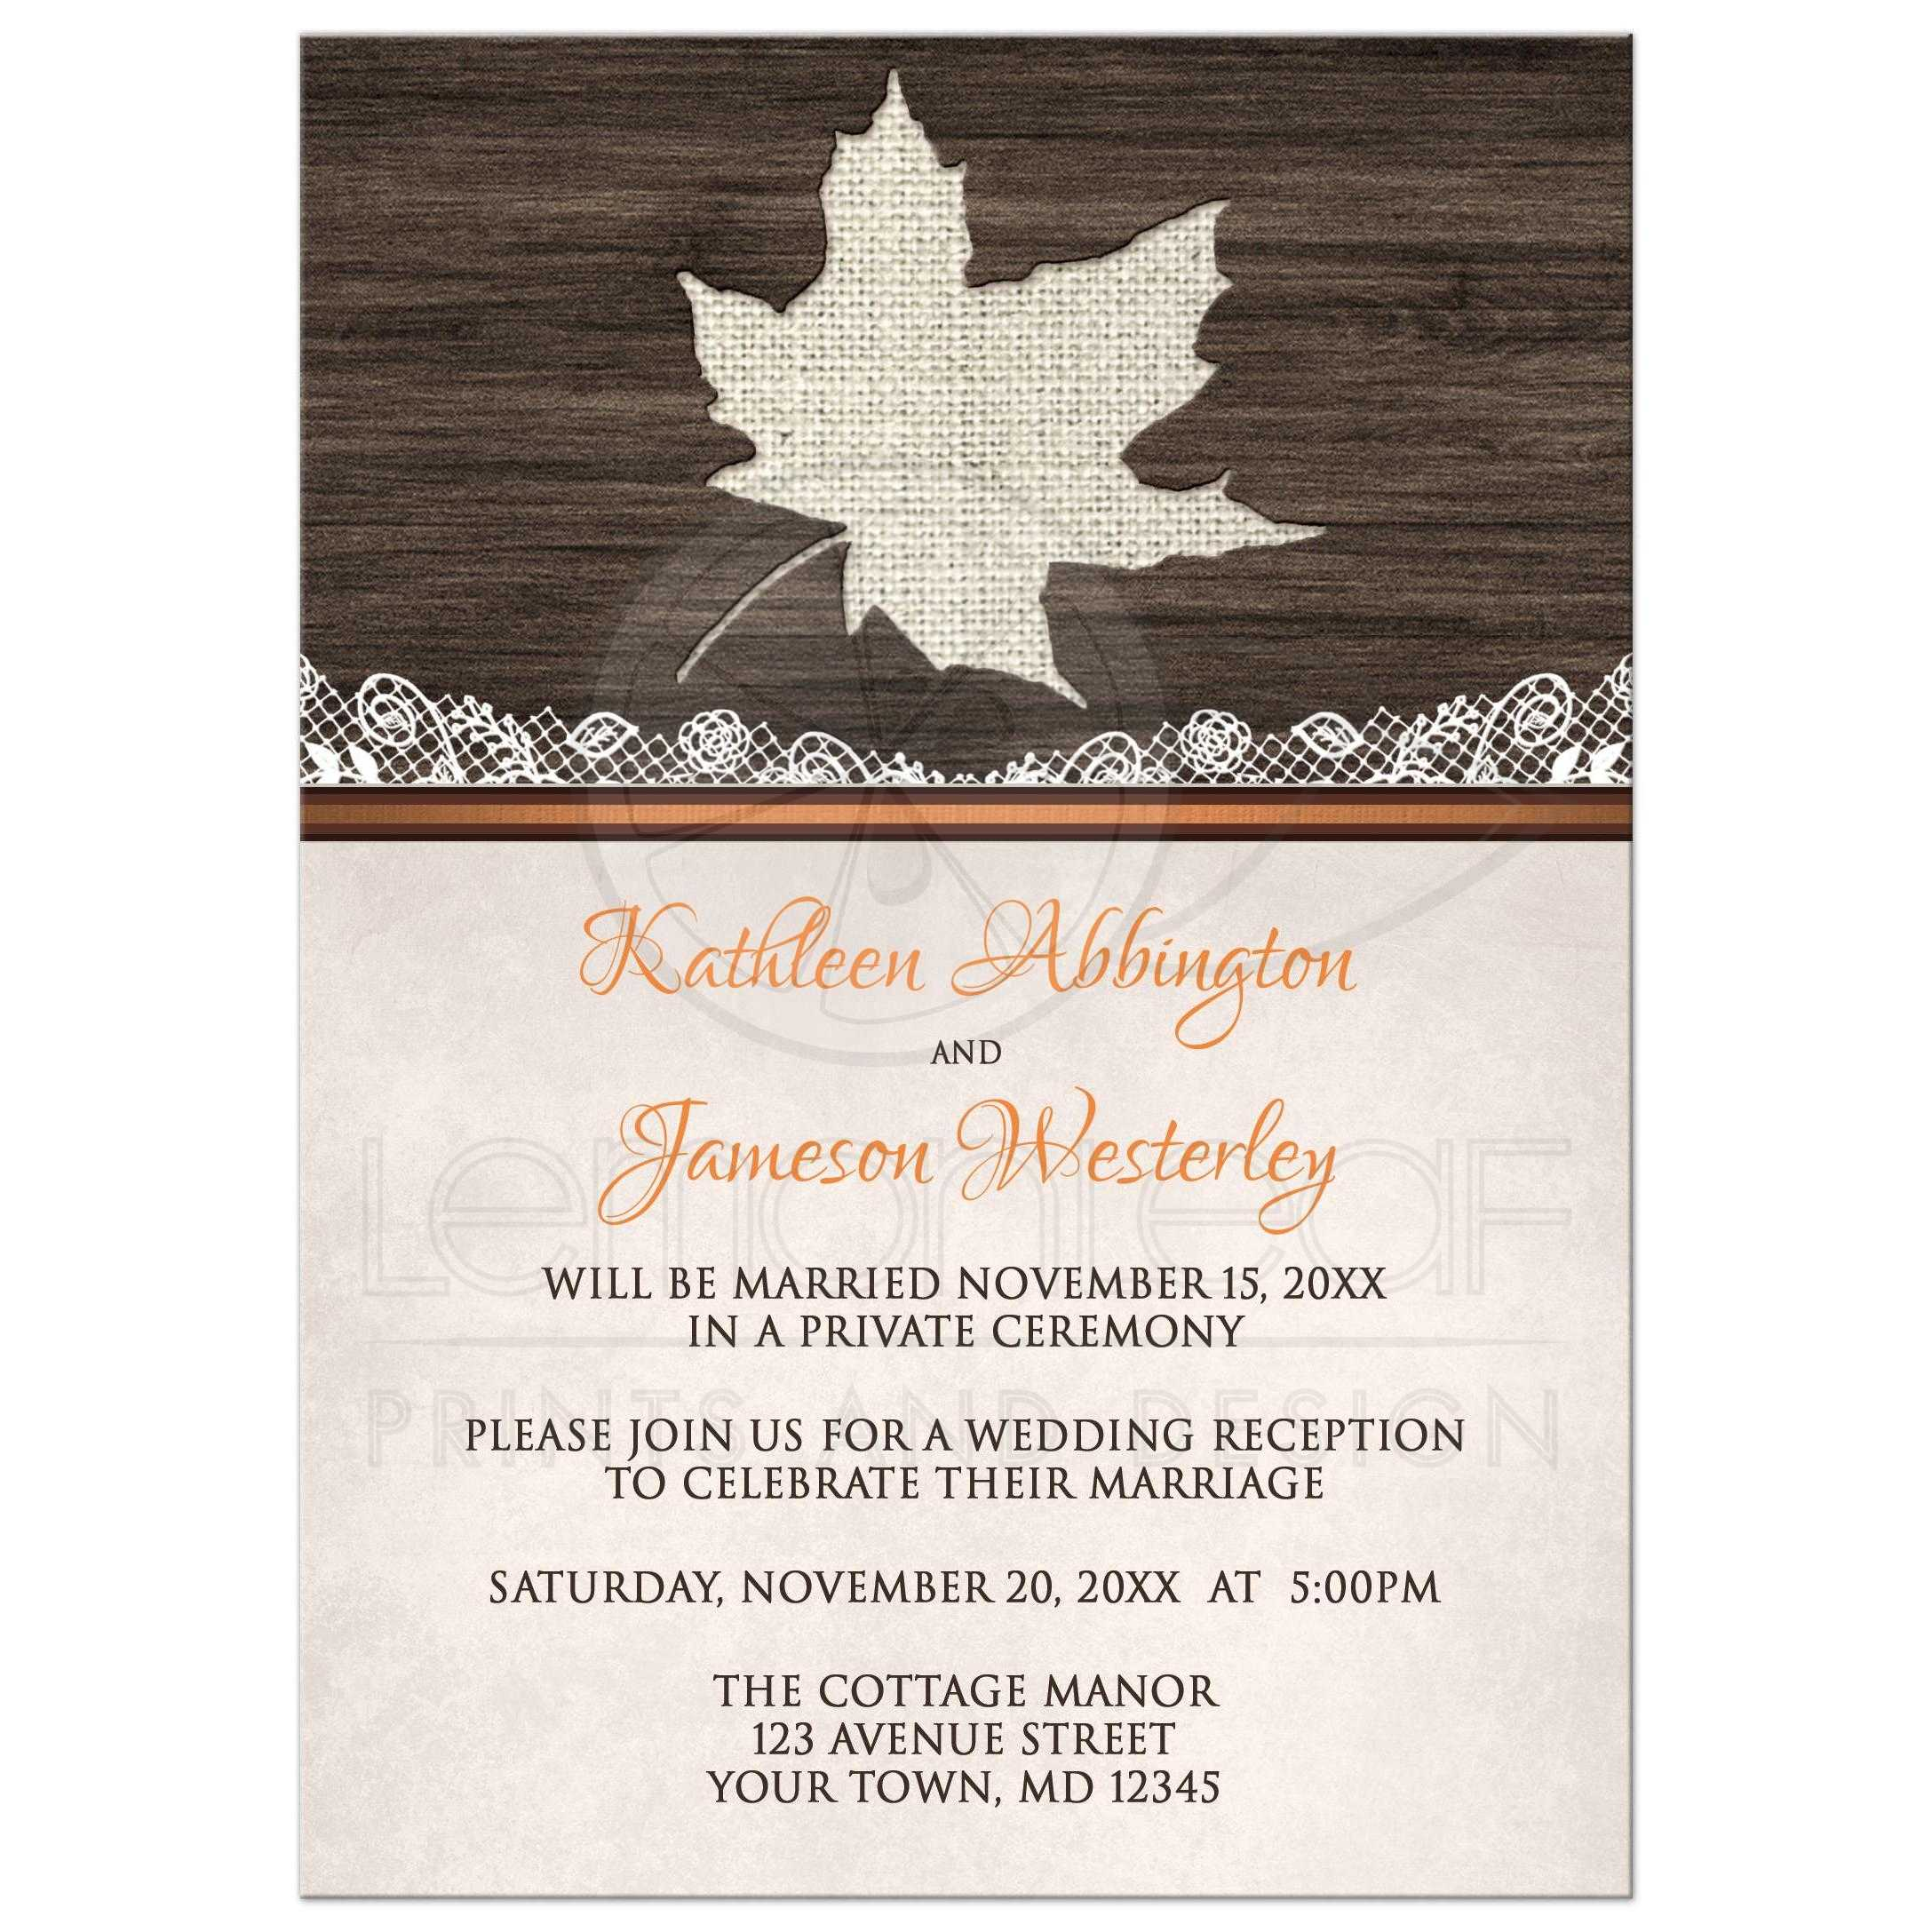 Only Invitations - Rustic Autumn Wood Leaf Orange